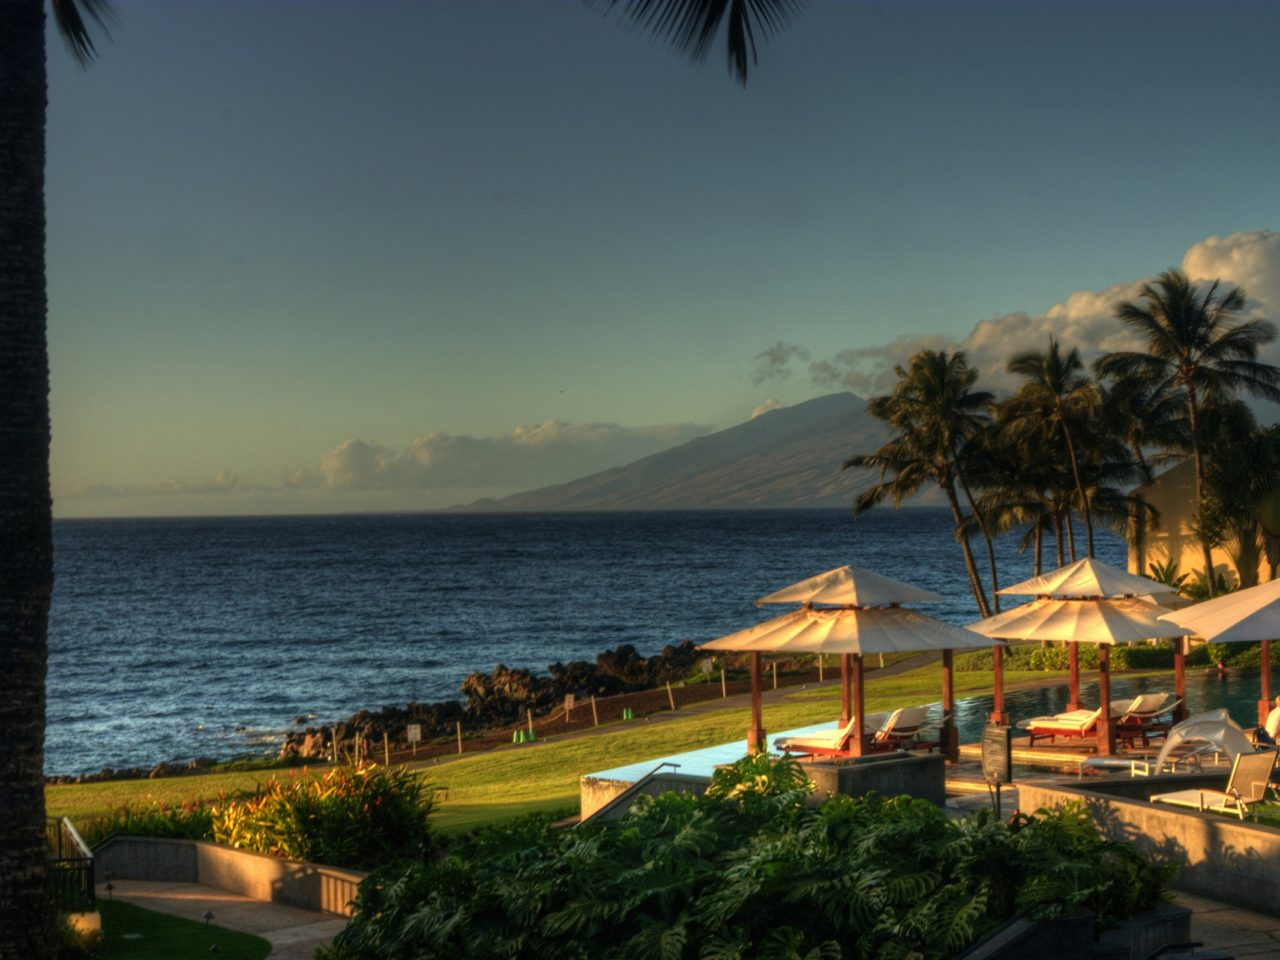 Hawaii Desktop Wallpaper Hd Wailea Maui Hawaii Desktop Background 560636